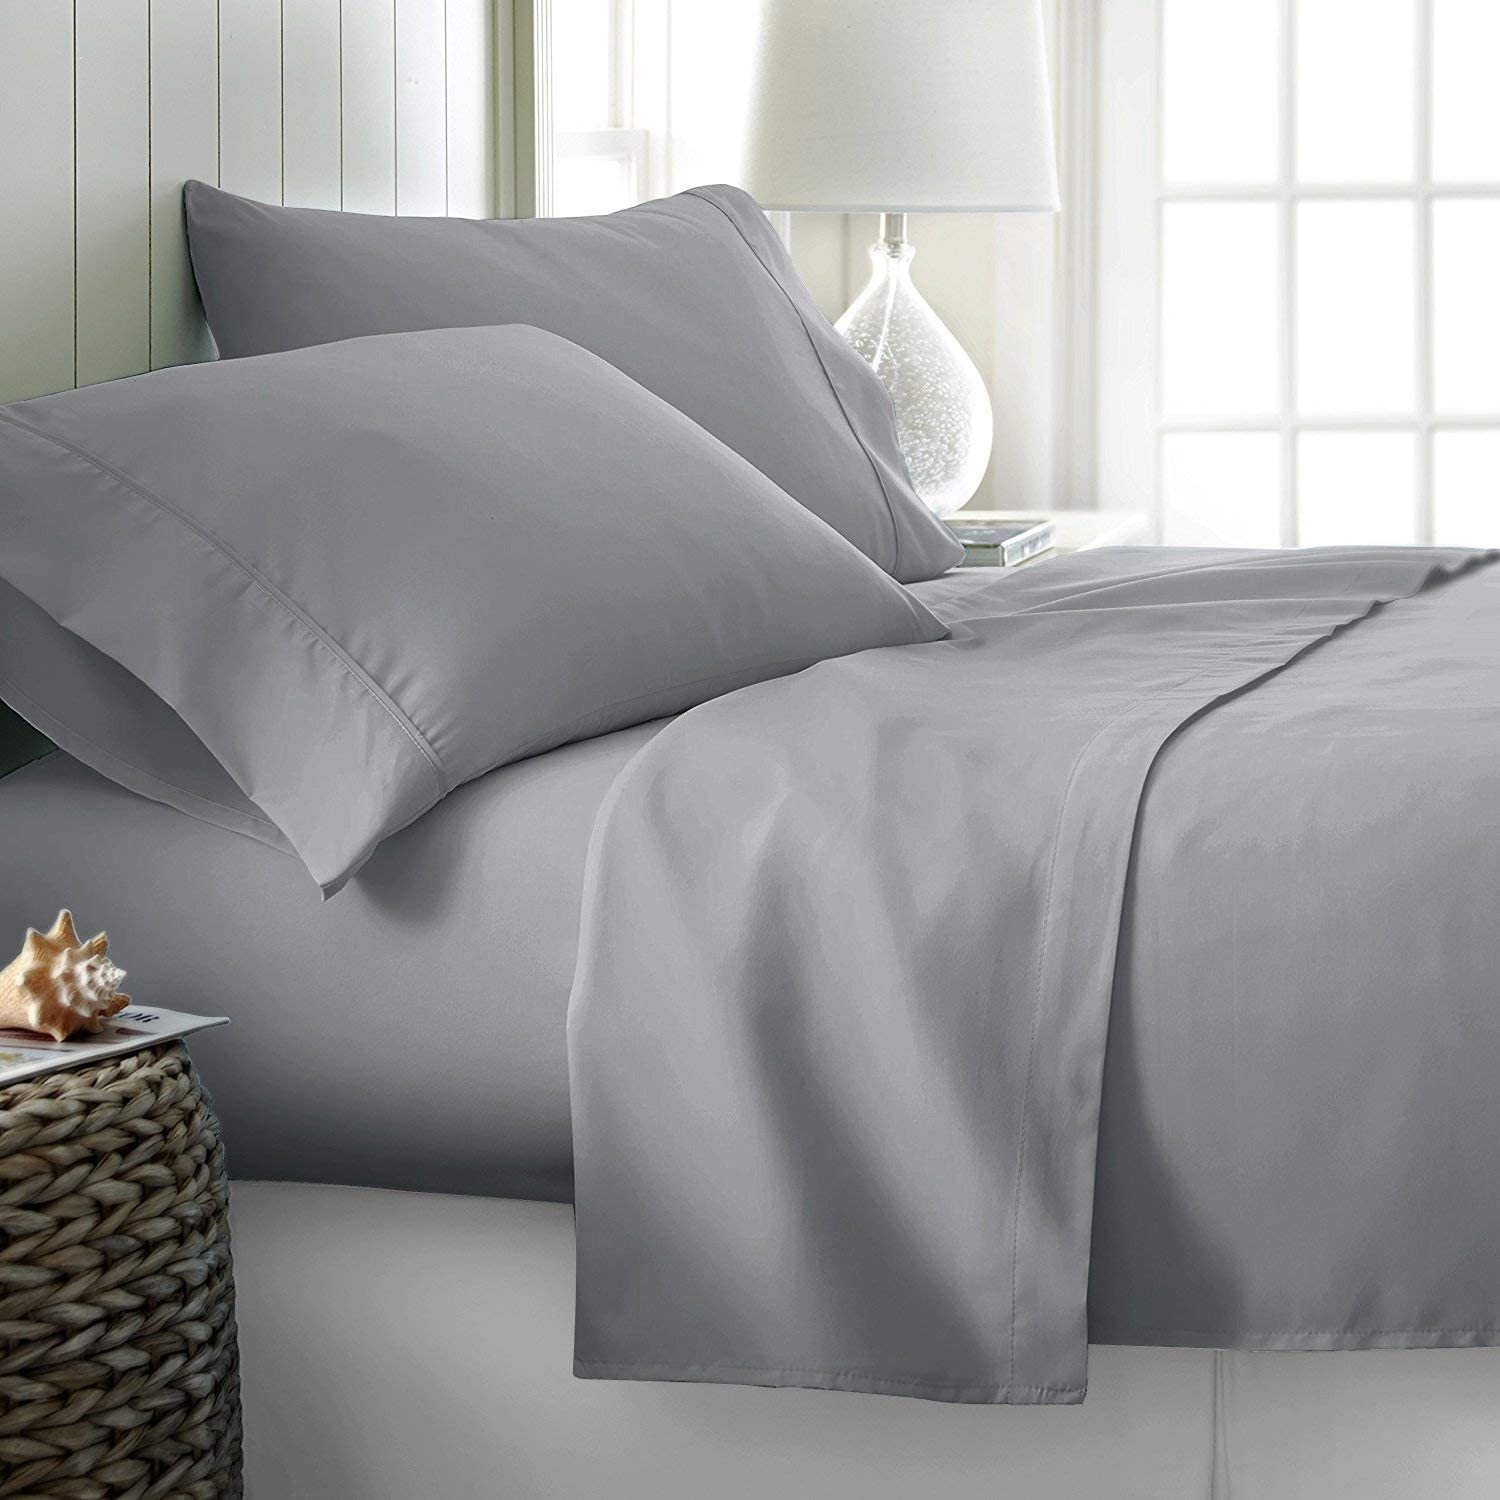 Ossam Linen Great Sale on Amazon 25% OFF Soft King Luxury 12 Excellent Sheets Size